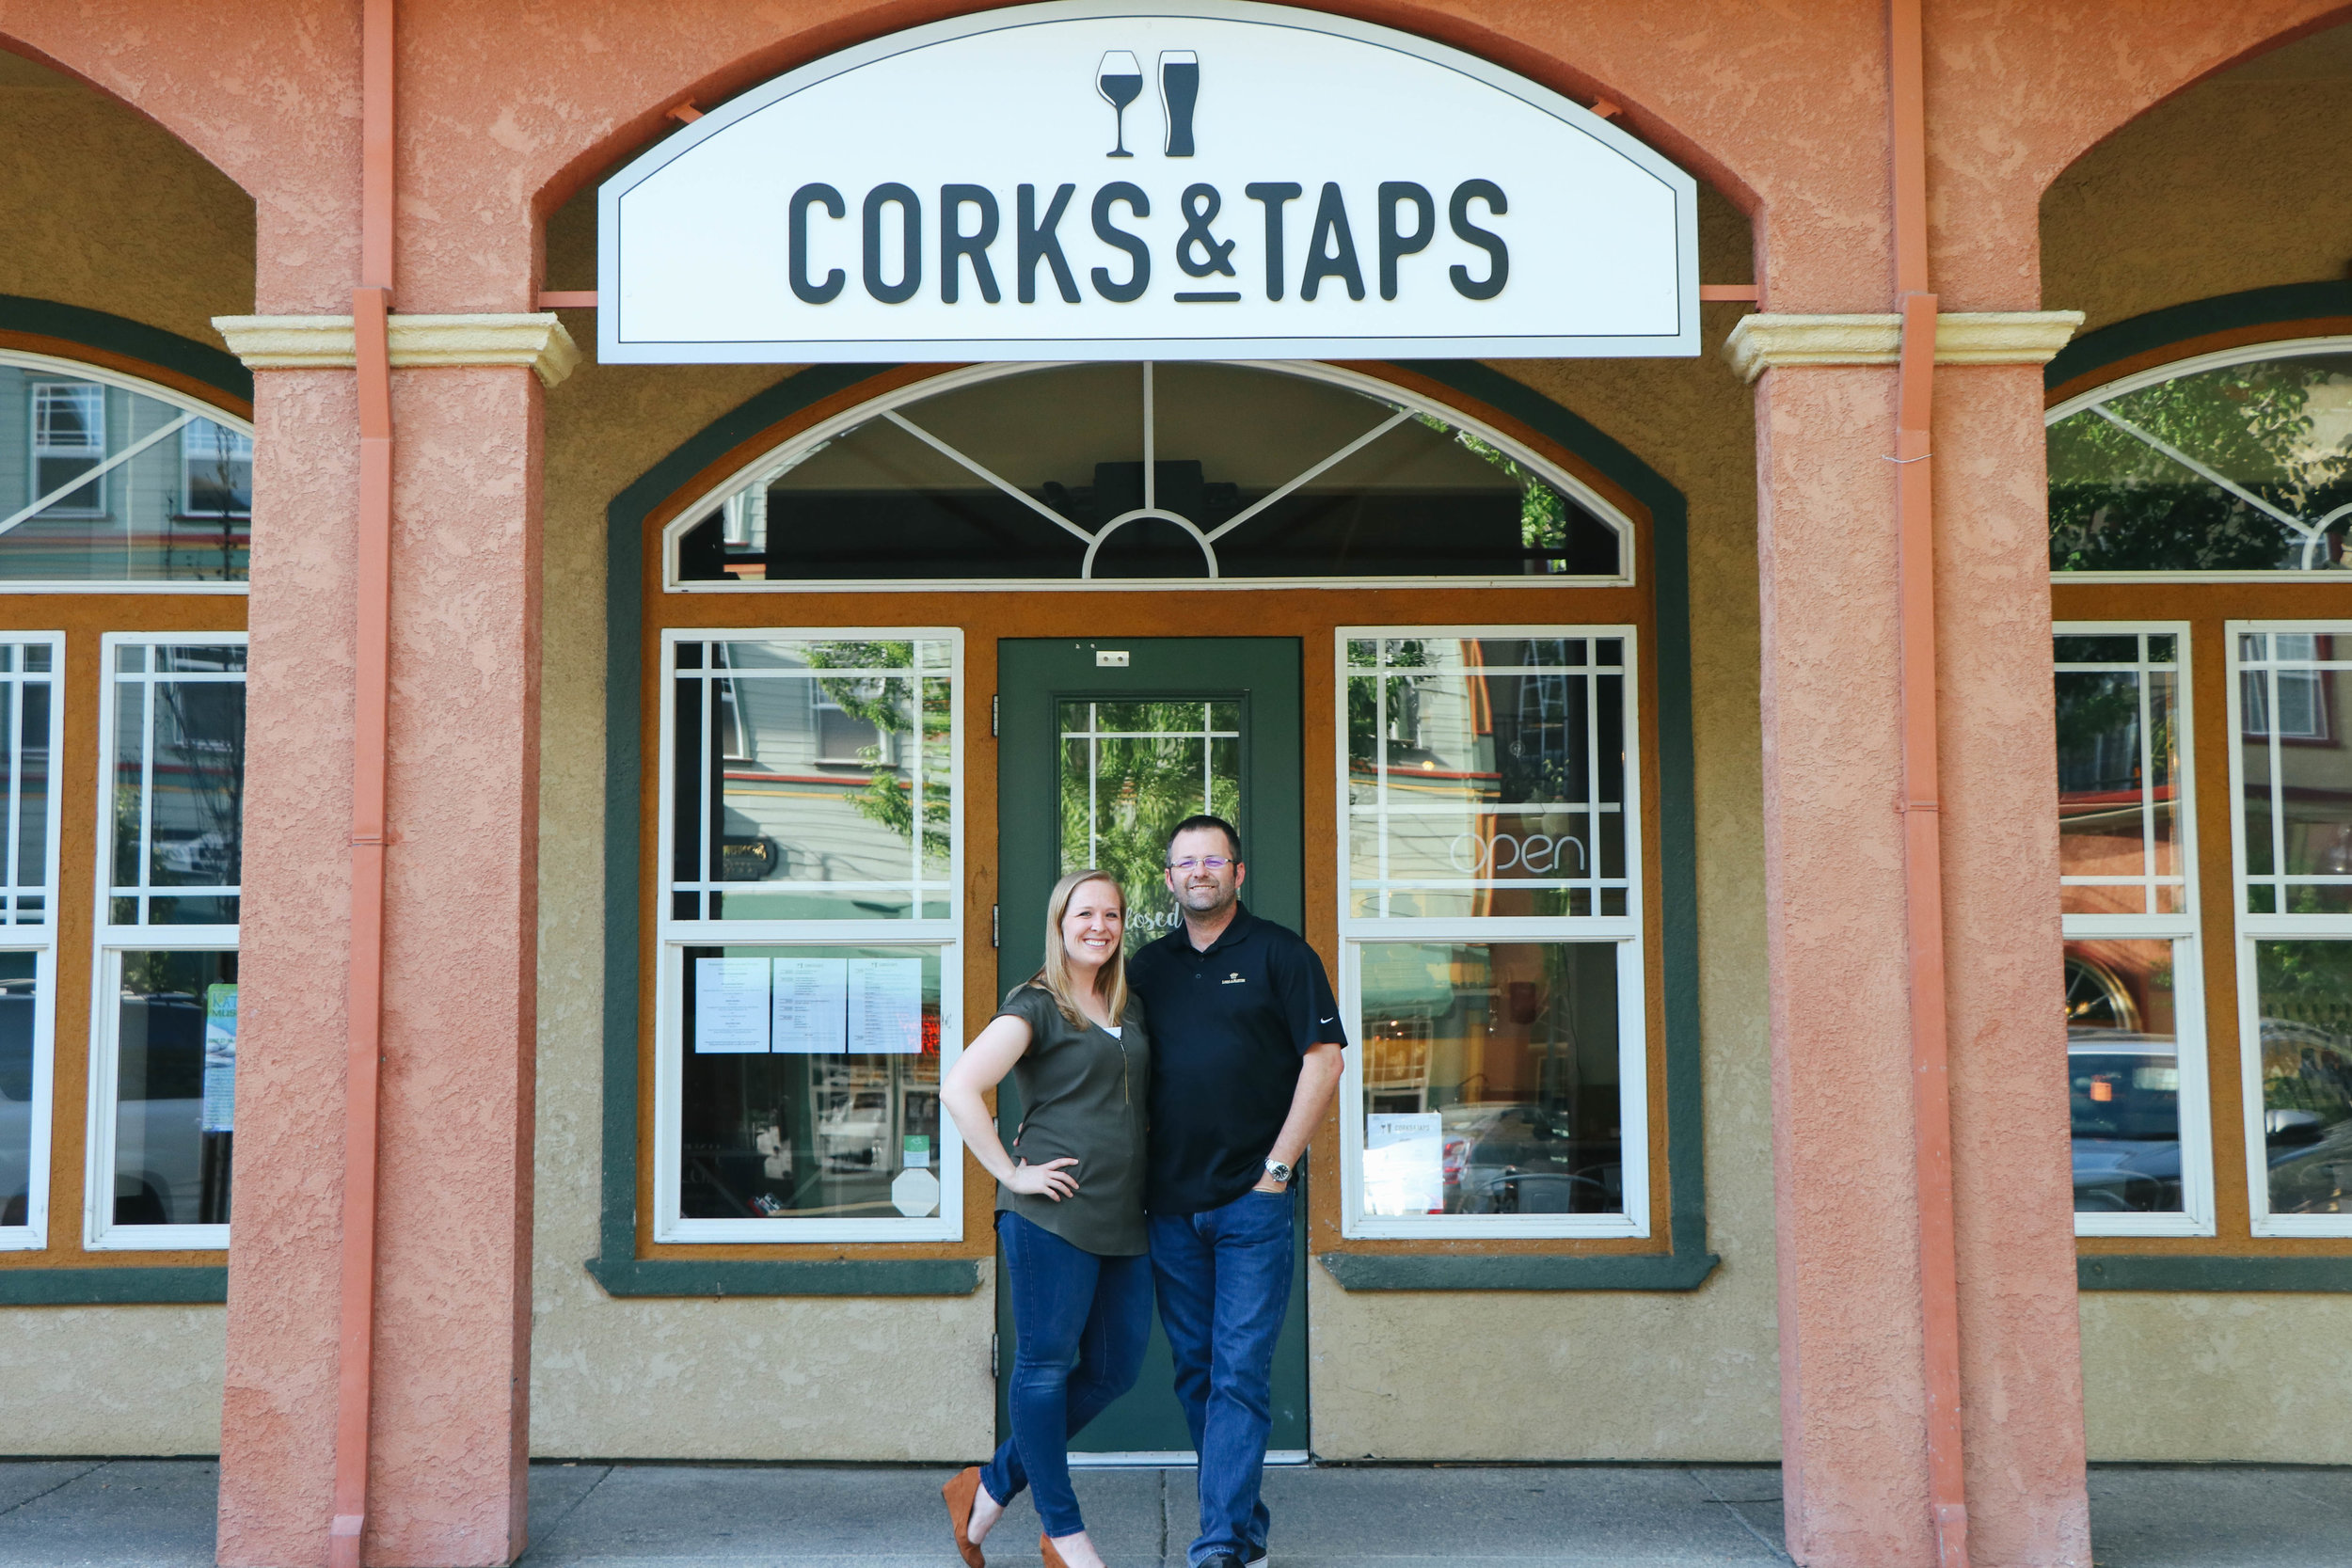 Our Story - It is not unusual to find owners, Floyd and Nicole, at one of the local Sonoma County taprooms or visiting one of the smaller wineries on a Sunday. Throw in a rare weekend off together and it's almost a guarantee that one of the surrounding wine and beer destinations is where they will go (think Anderson Valley, SLO or Paso Robles...San Diego is still on the list!). When they started dating, each had their separate favorite: Nicole almost exclusively drank wine and Floyd was more likely to have a pint glass in hand. Through the years, they have taught each other about their favorite beverages. It was a natural extension that they would dream of opening up their own place where they could share their passions with others.